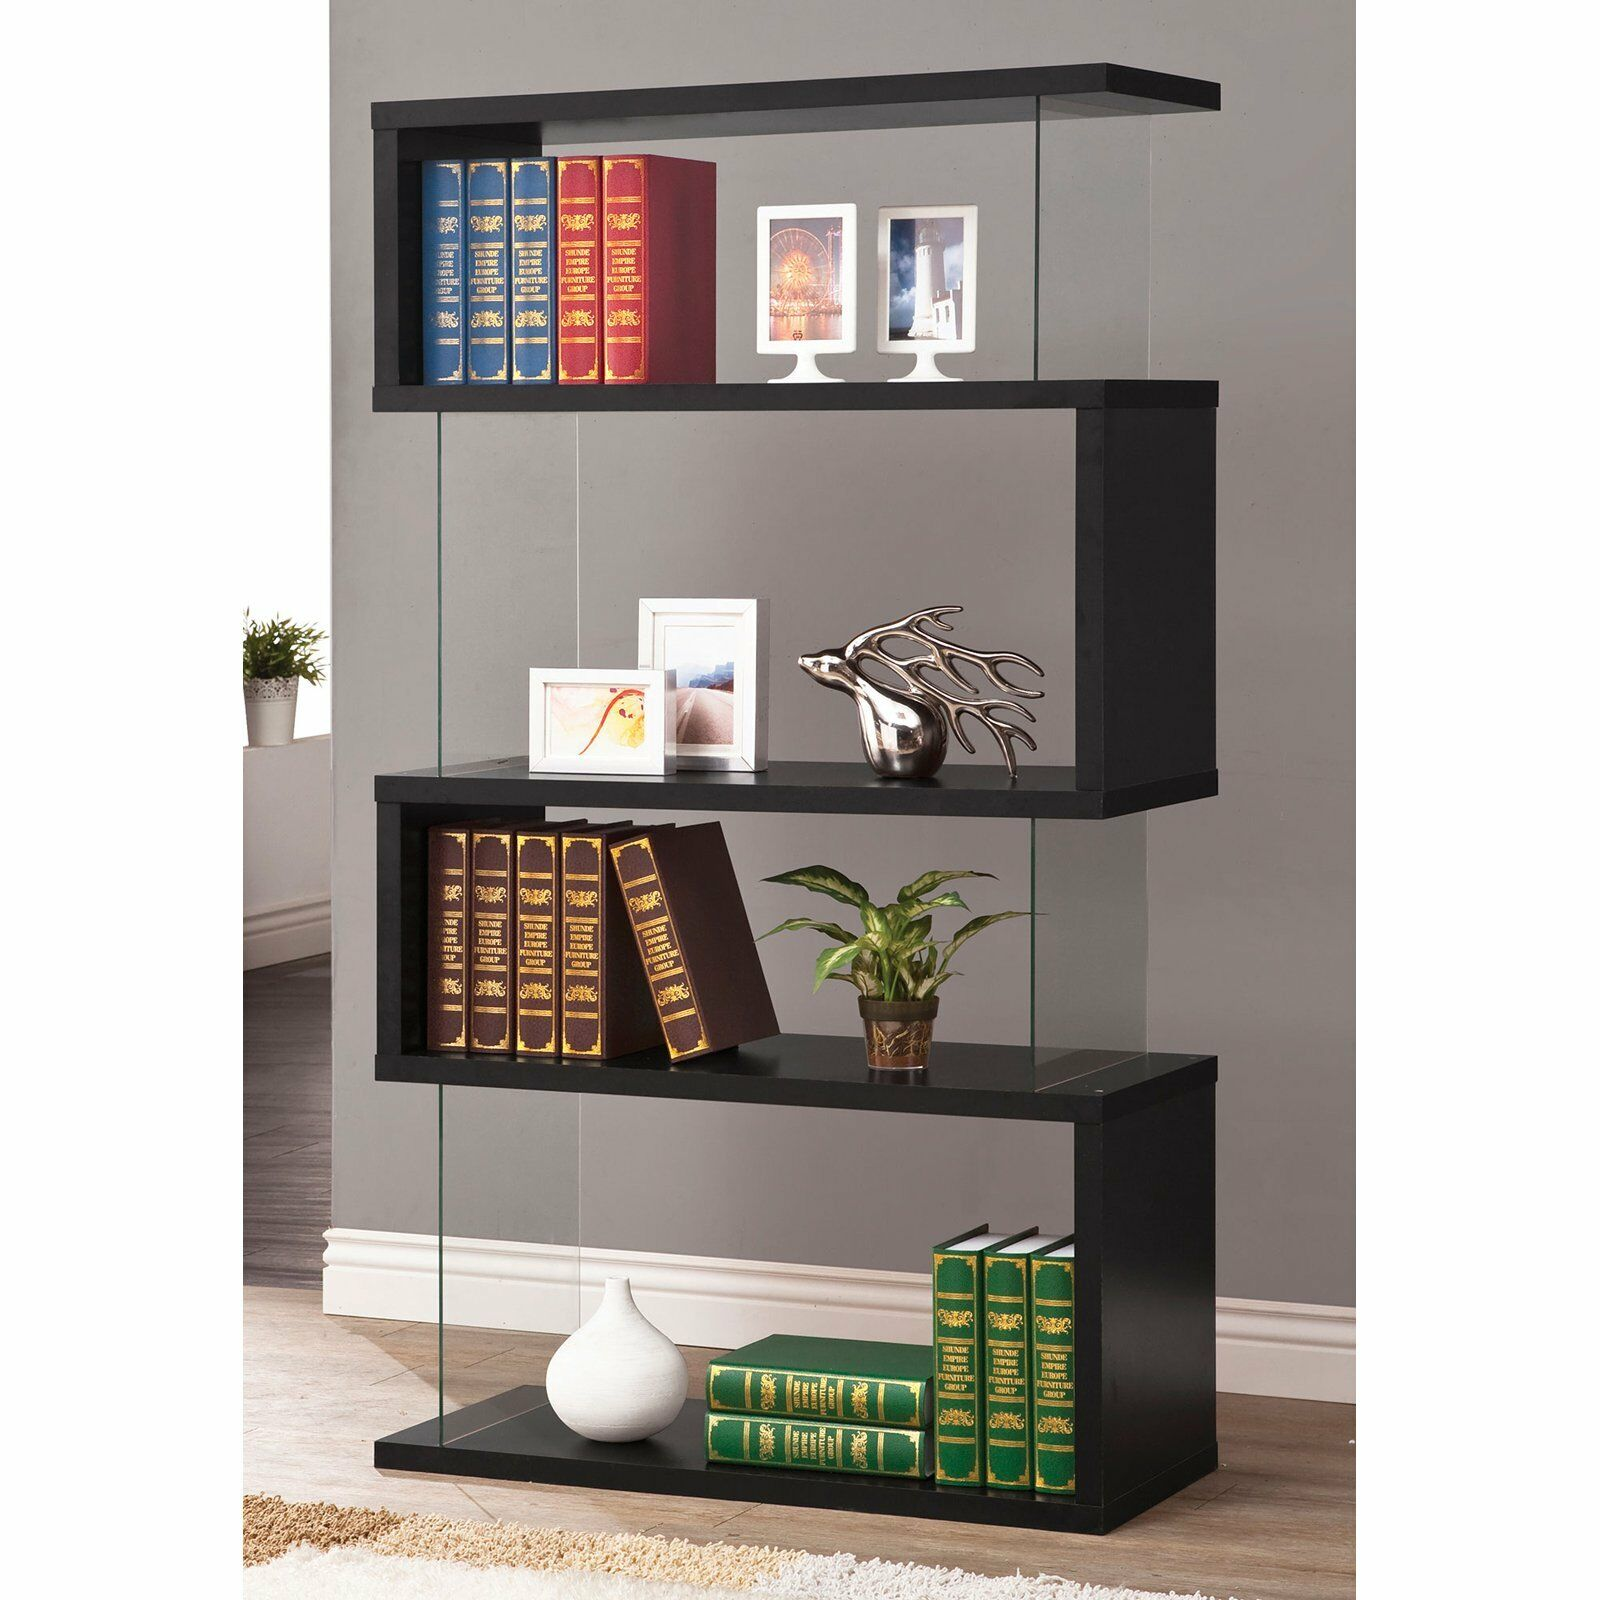 Black Wood Glass Modern Bookcase Bookshelf Shelf Display Living Room Office